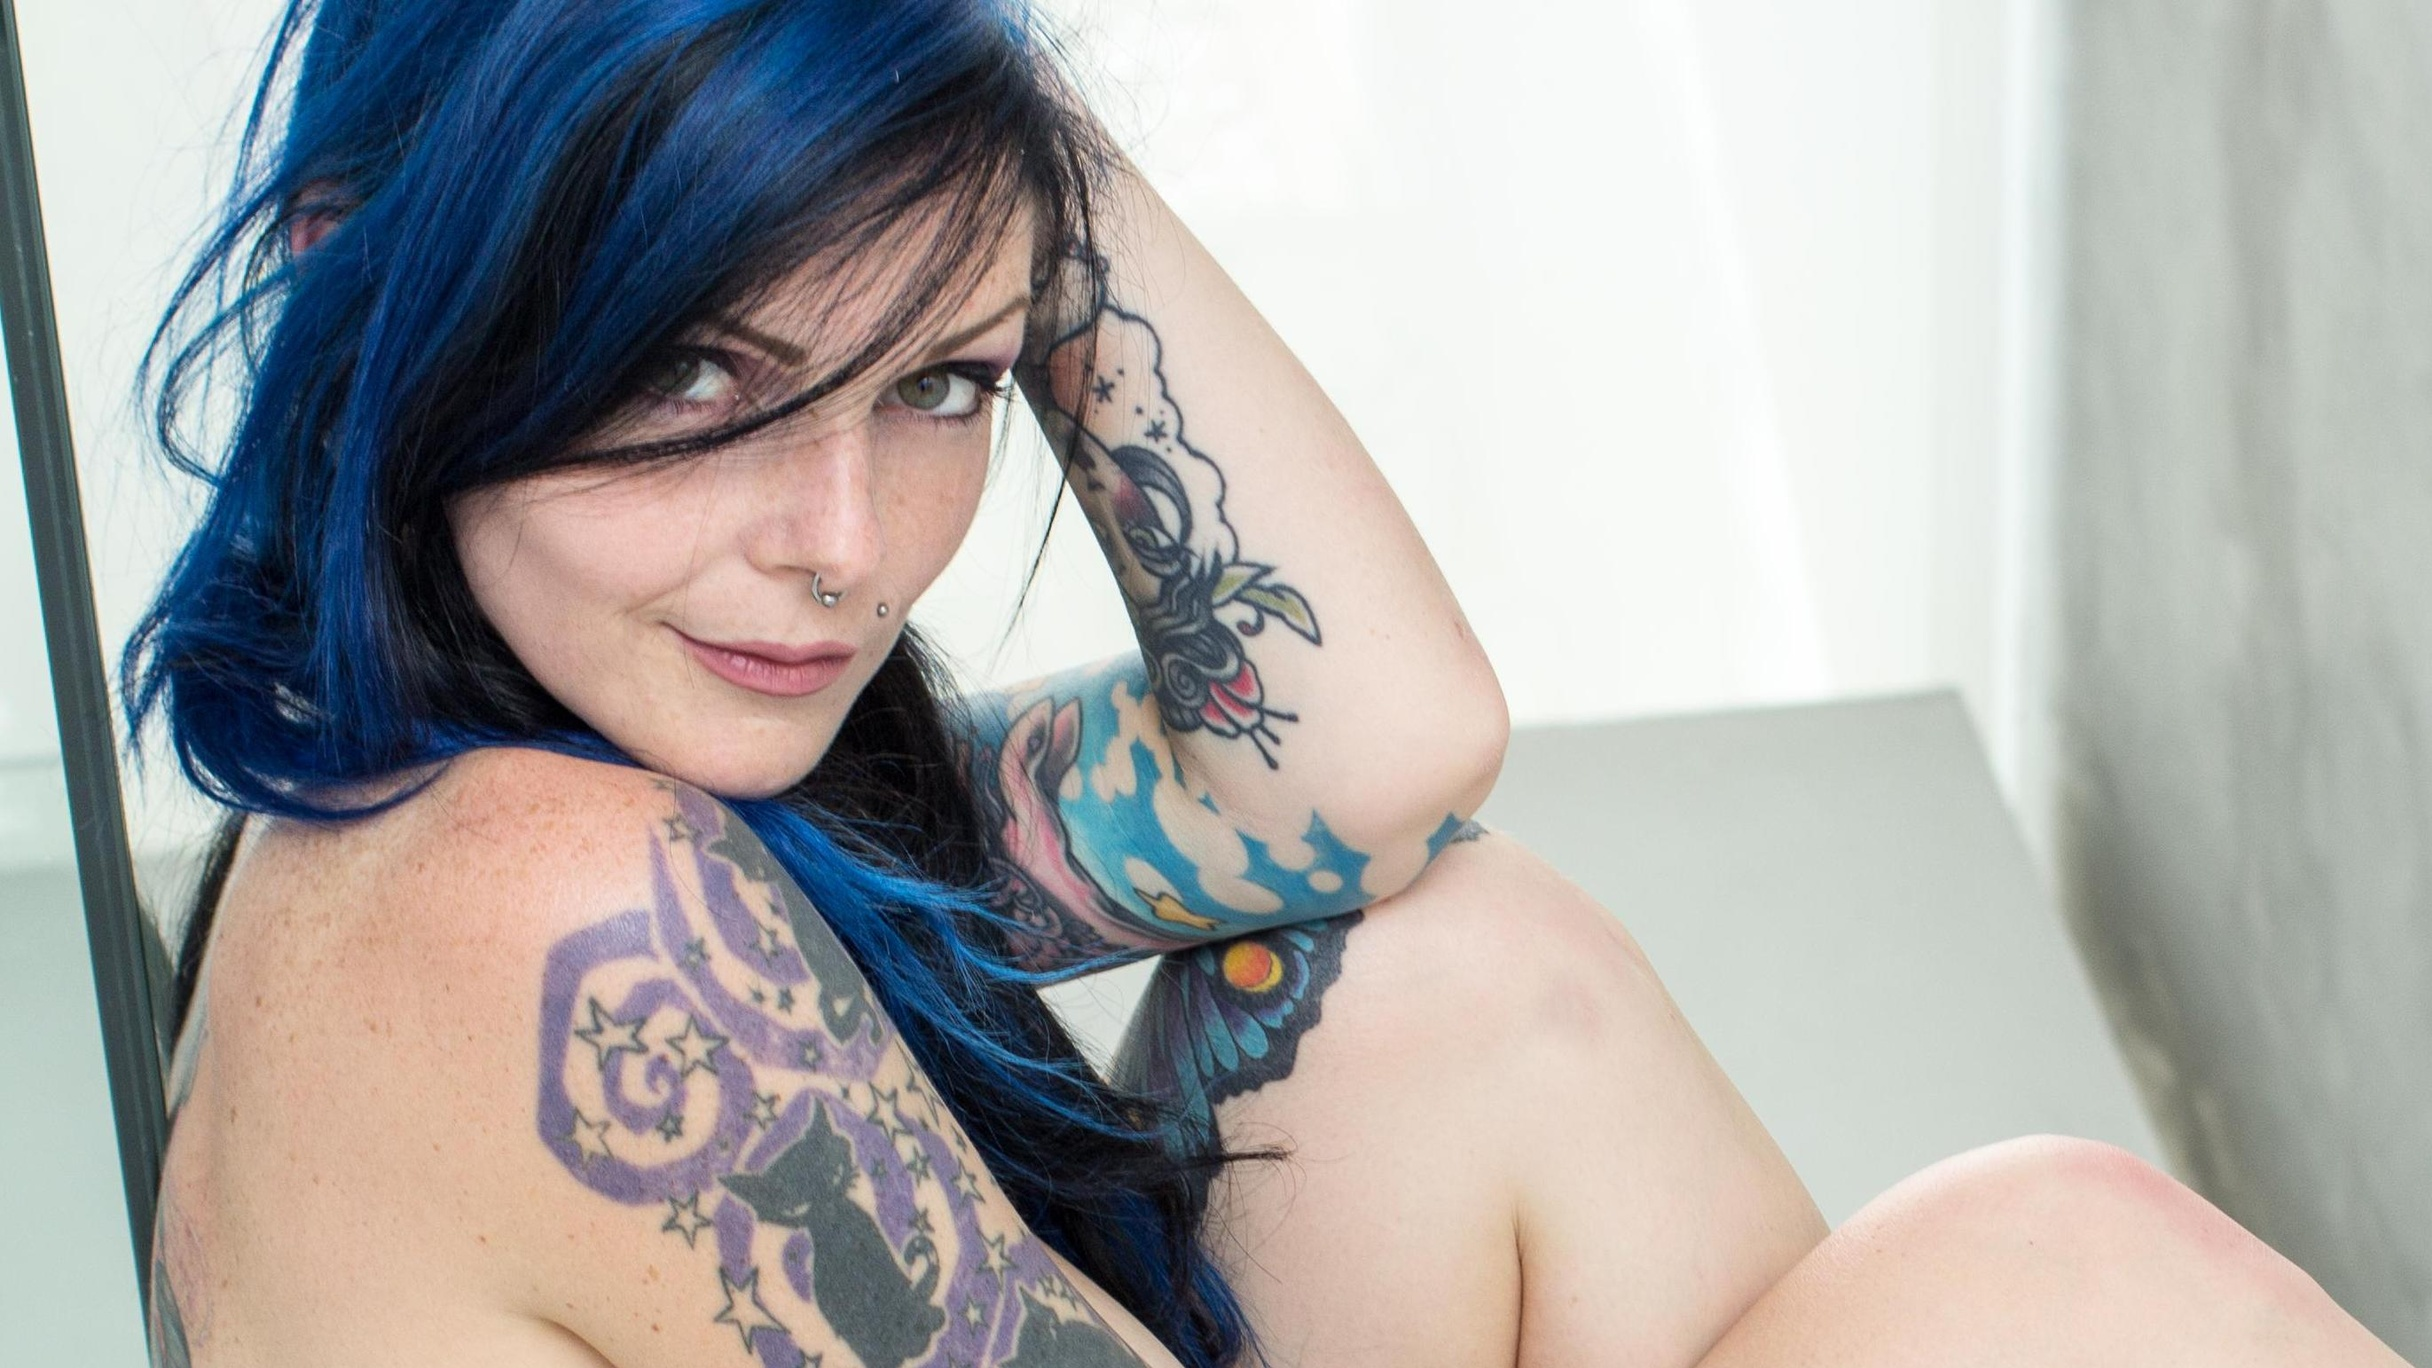 Riae Suicide  - Step By Step suicidegirls @riae rabbit,bear,mouse,fascinating,stunning